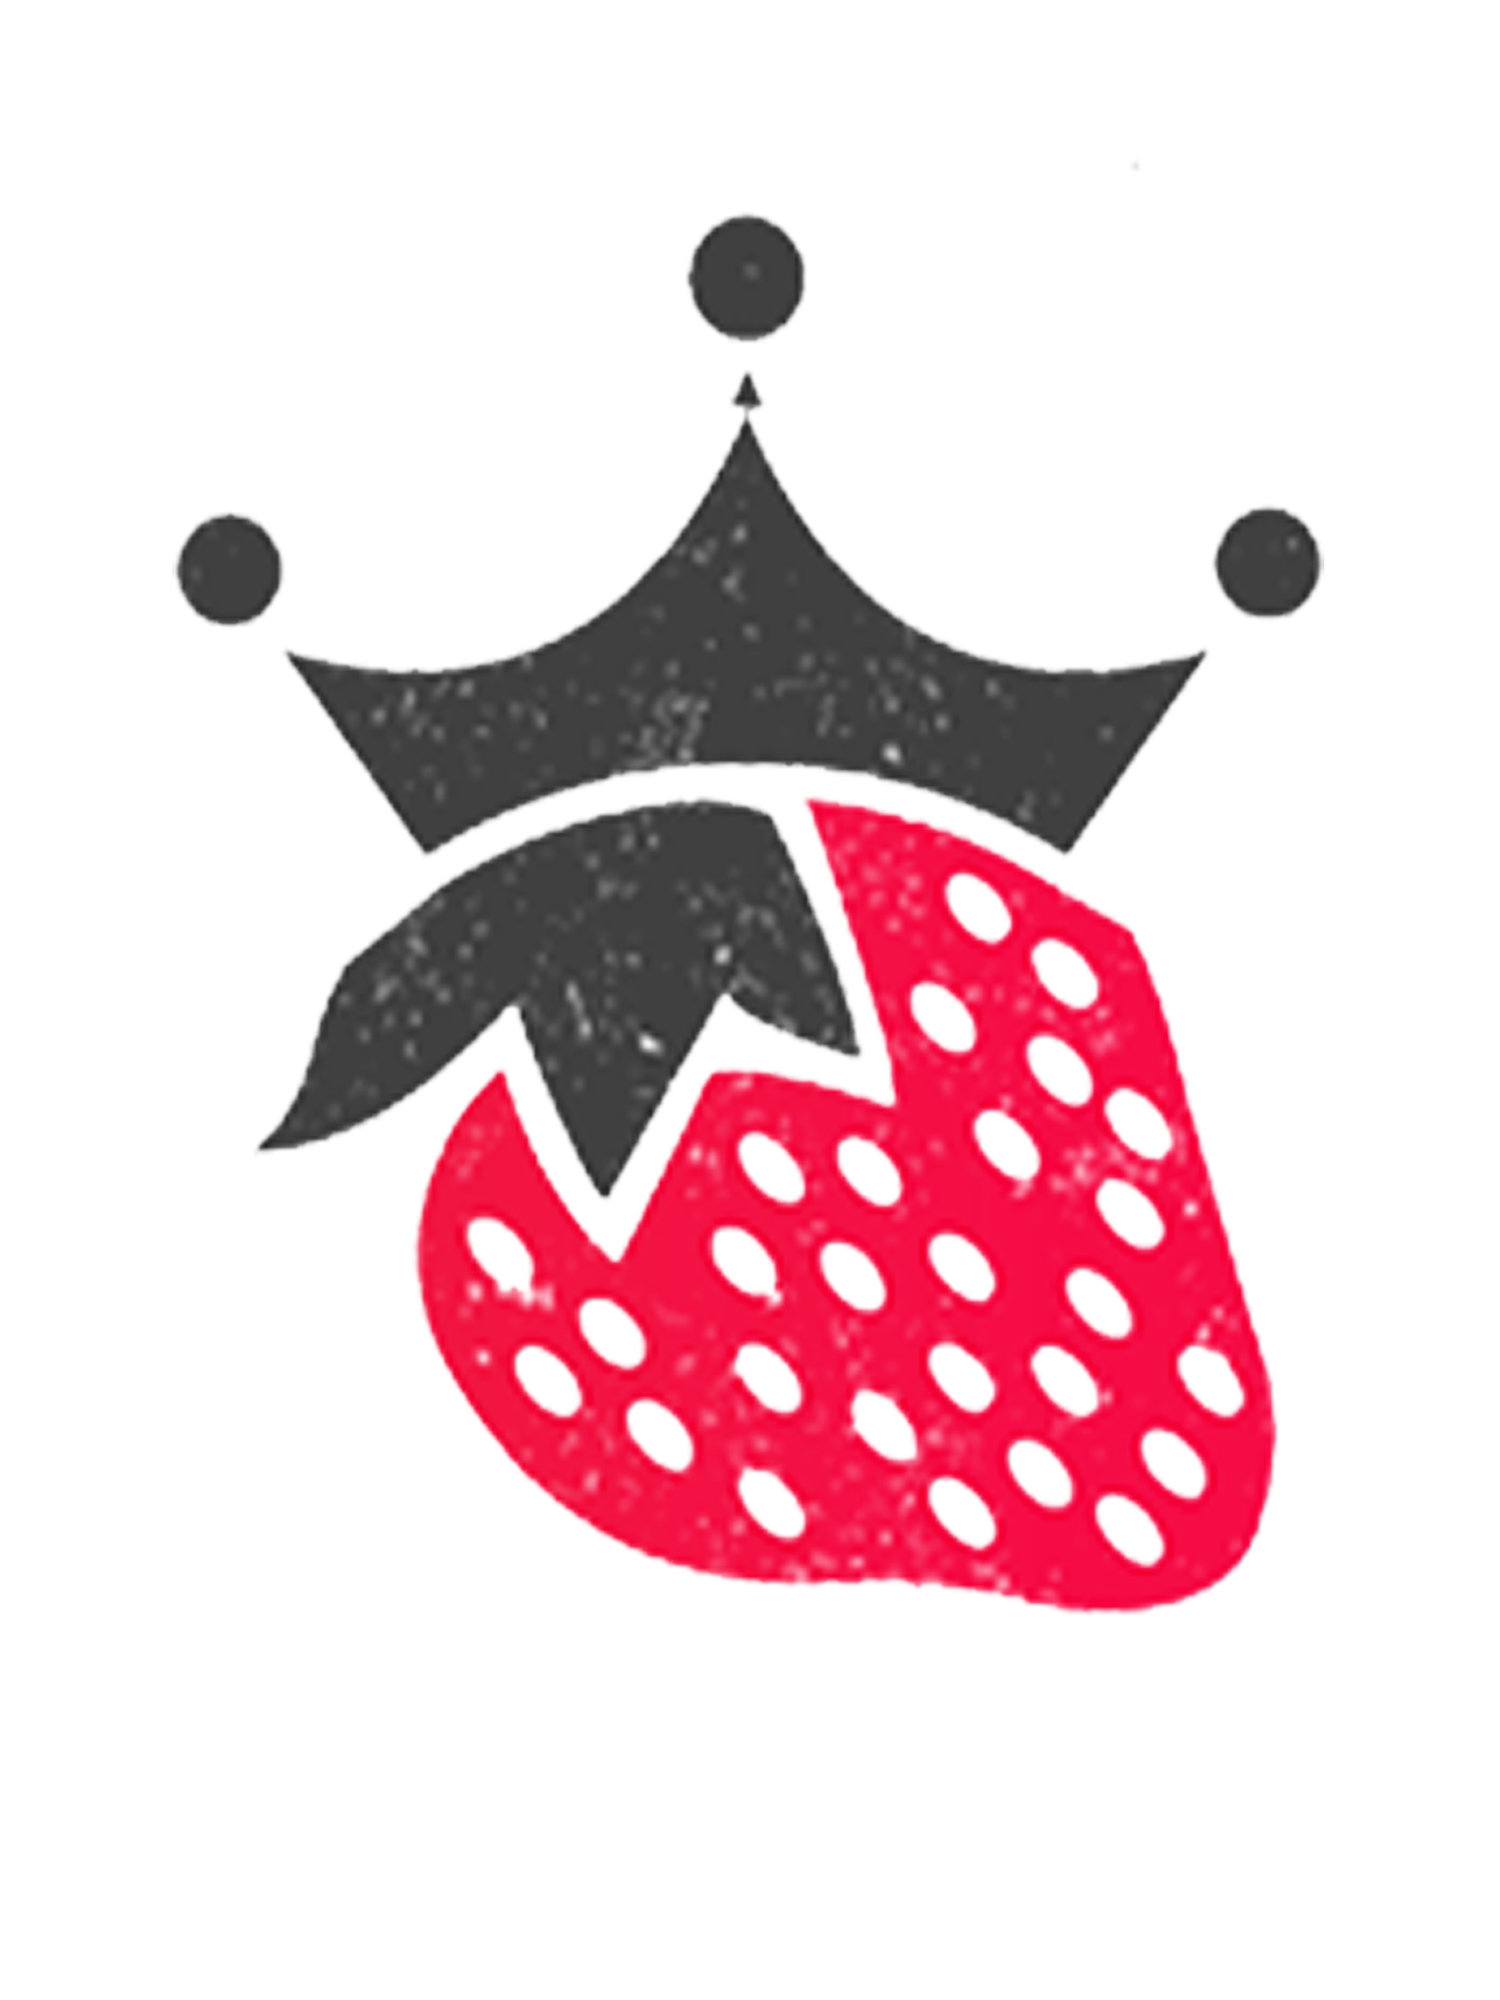 Queen & Berry  + Squarespace Design | Branding Experts | Chicago, IL